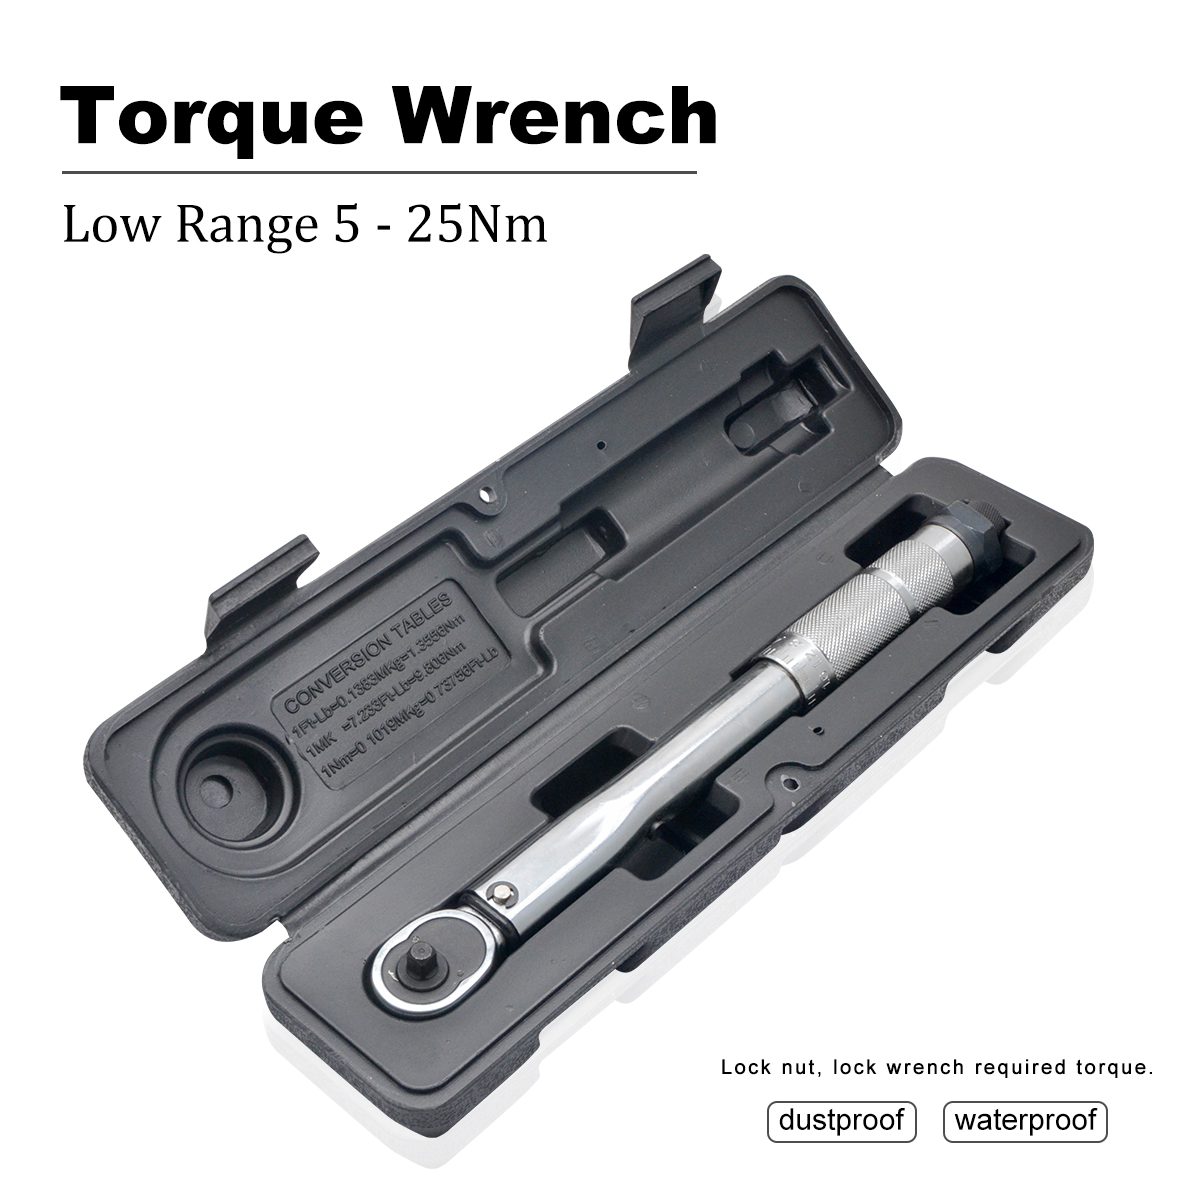 Torque Wrench Bike 1/4 Square Drive 5-25N.m Two-way Precise Ratchet Wrench Repair Spanner Key Hand Tools